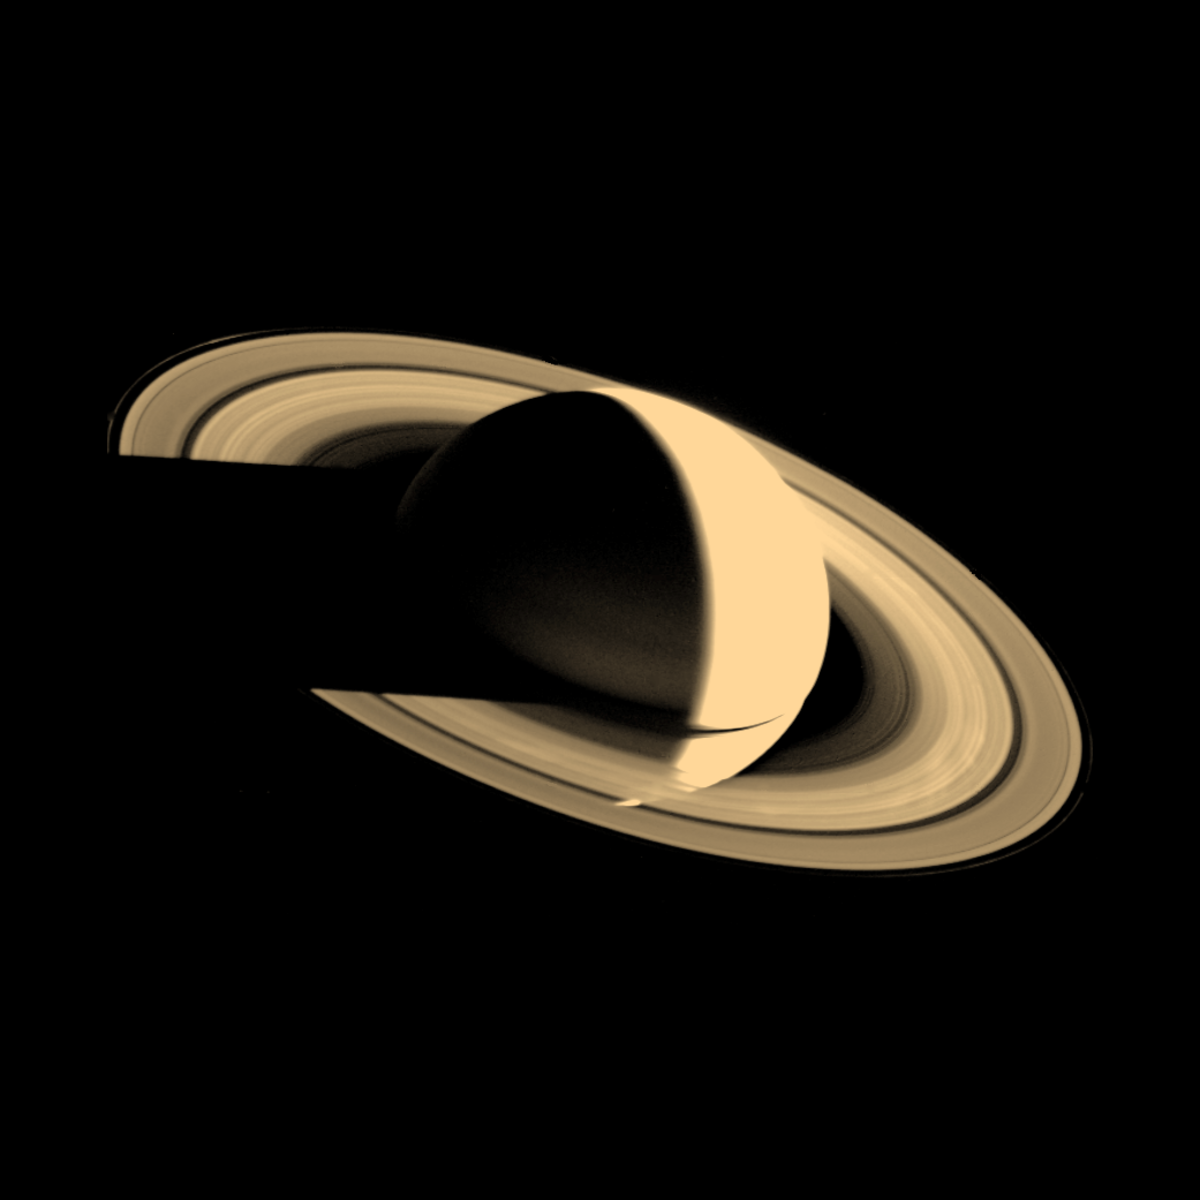 Voyager 1 Spacecraft image of Saturn on Nov. 16, 1980, taken at a distance of 3.3 million miles from the planet.